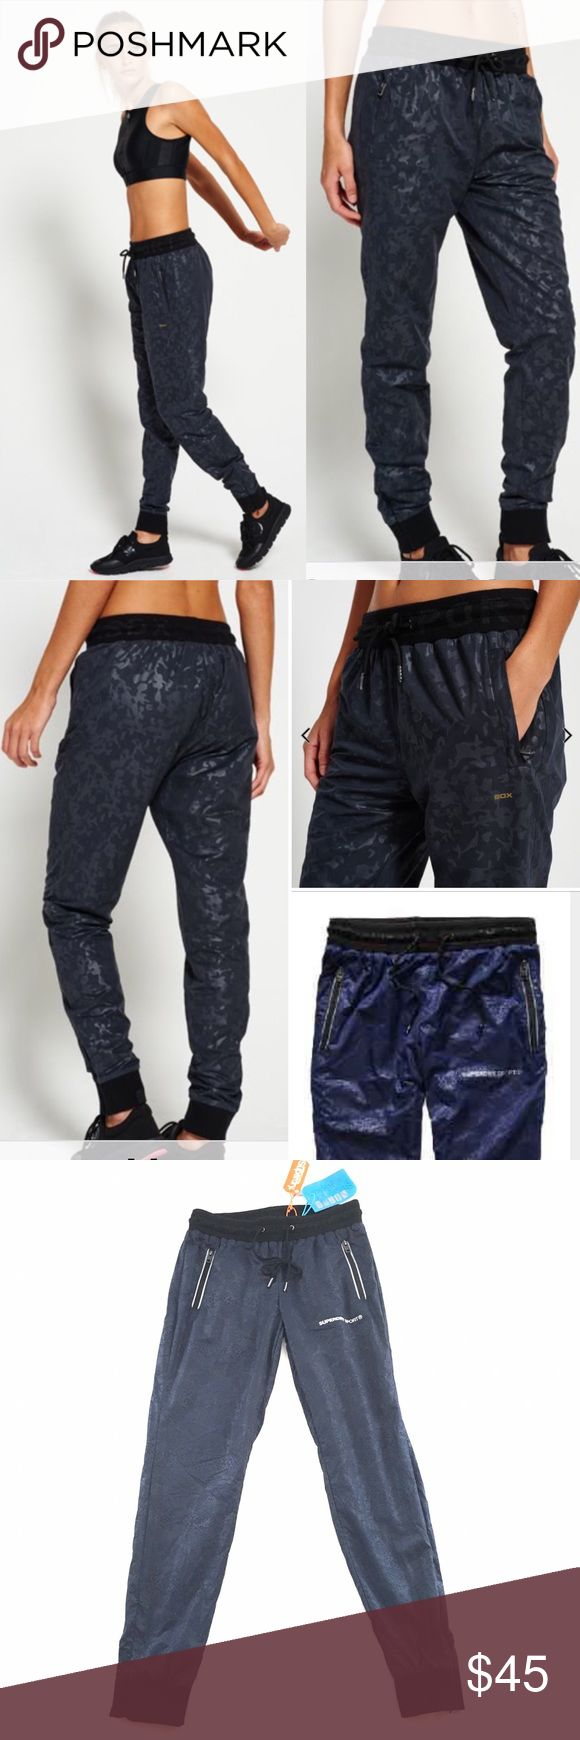 Superdry Joggers Superdry Sport gym woven jogger in 'rich navy python' print. Size M, zip pockets and zip ankles. Elastic waistband and drawstring. NWT Superdry Pants Track Pants & Joggers